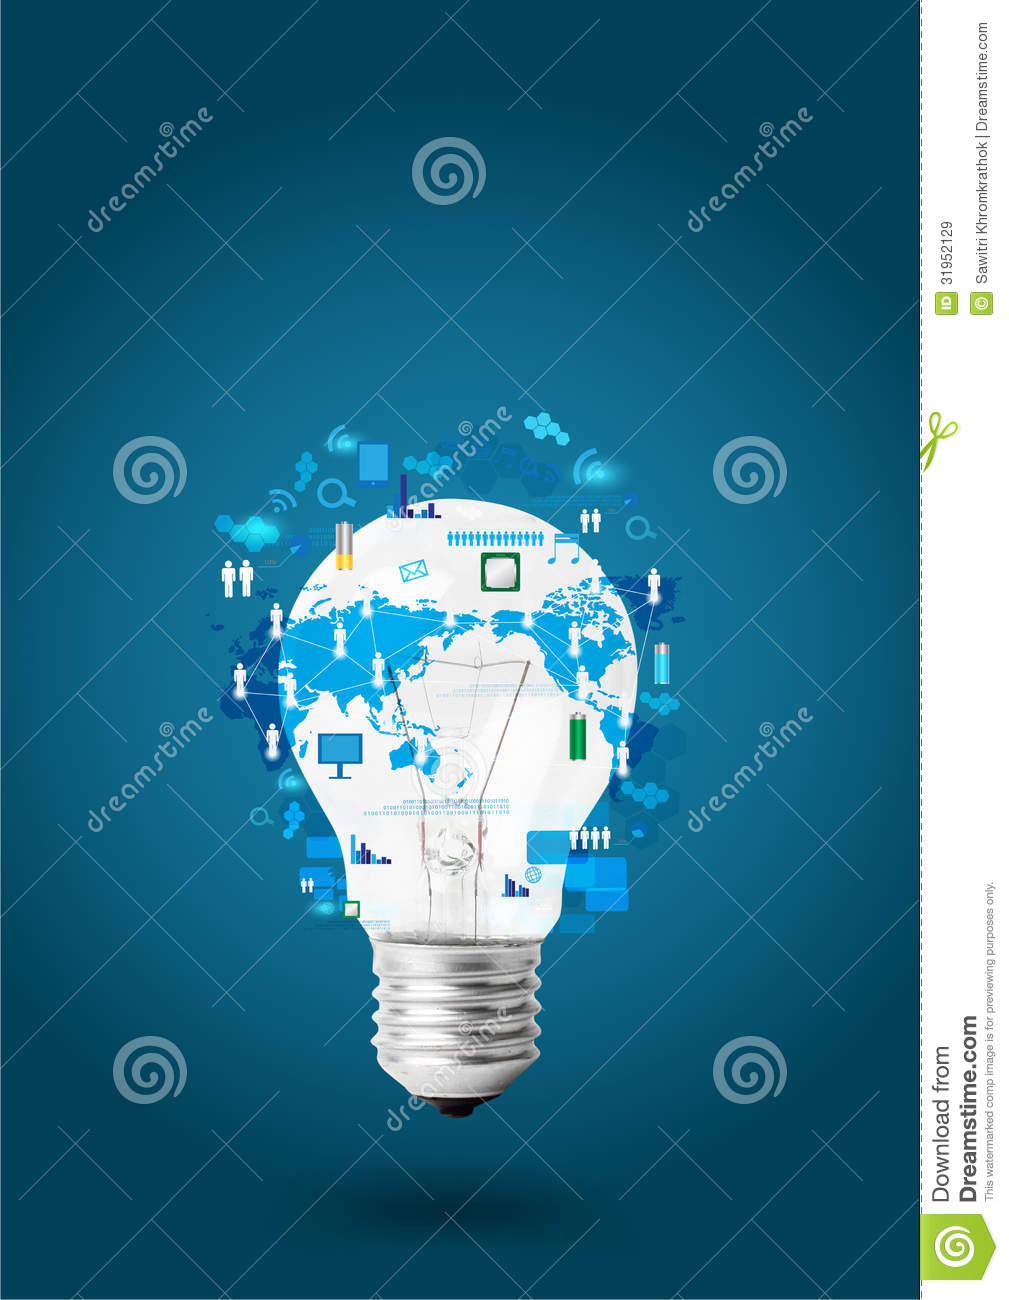 Creative Light Bulb With Technology Business Network Royalty Free Stock Images